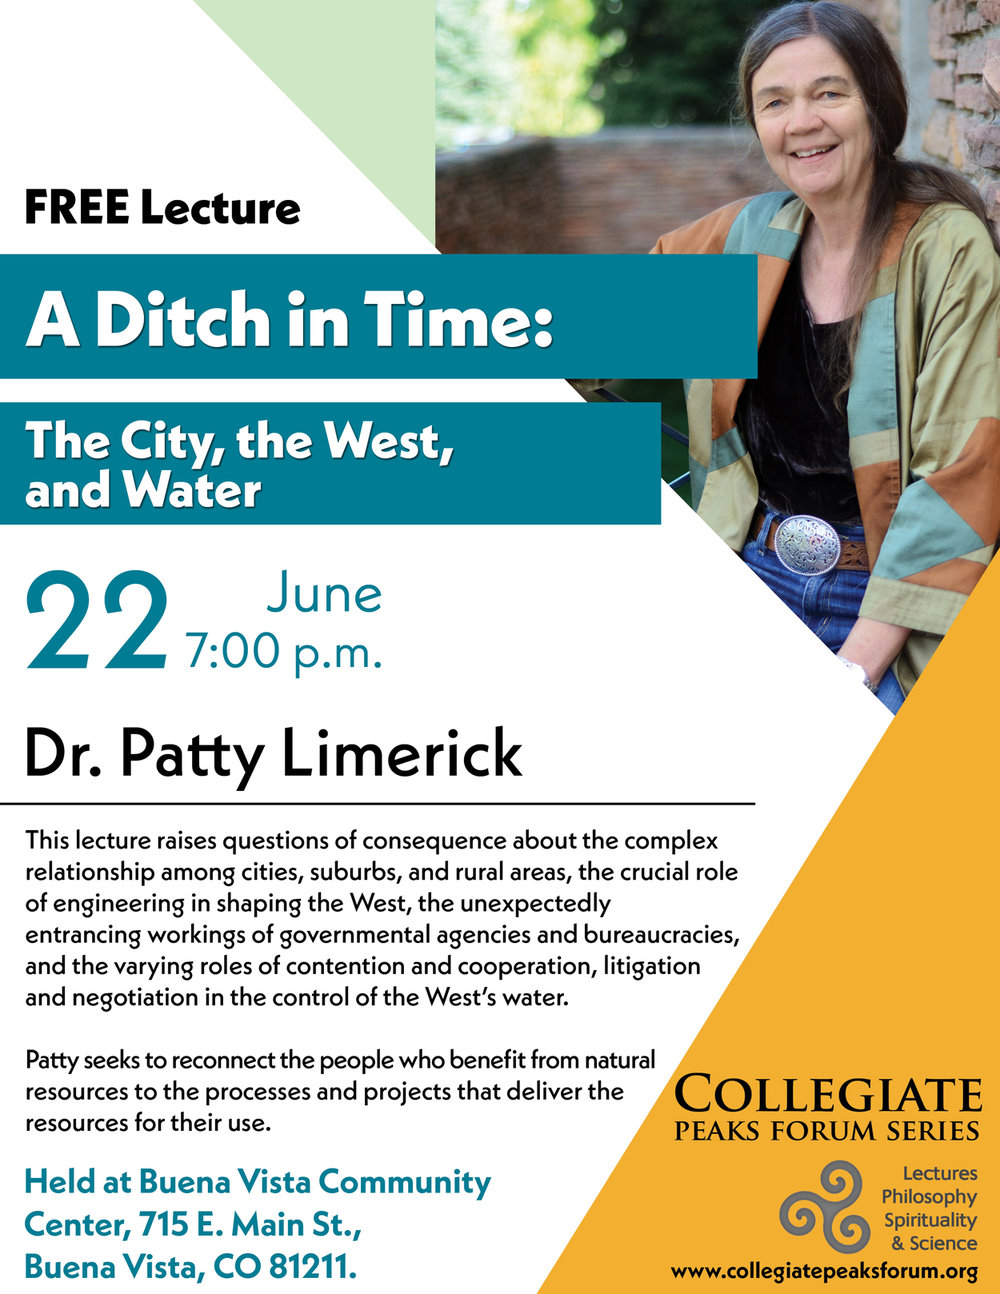 June 22, 2017 Dr. Patty Limerick